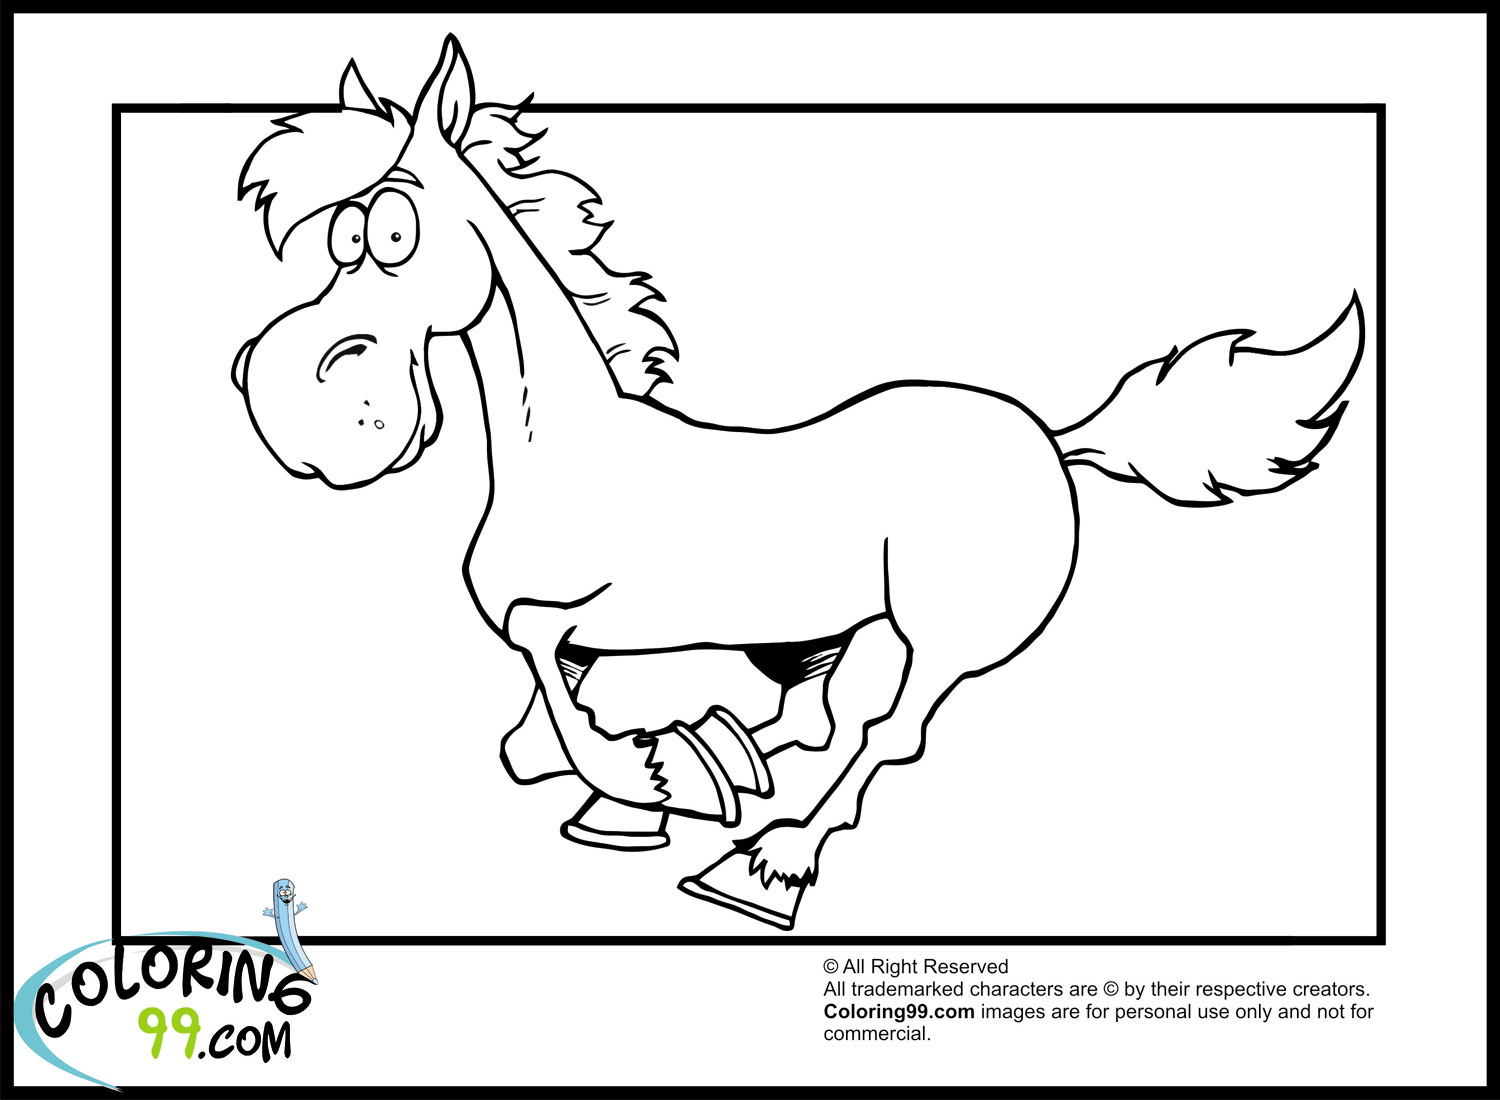 coloring book pages of horses | January 2013 | Team colors